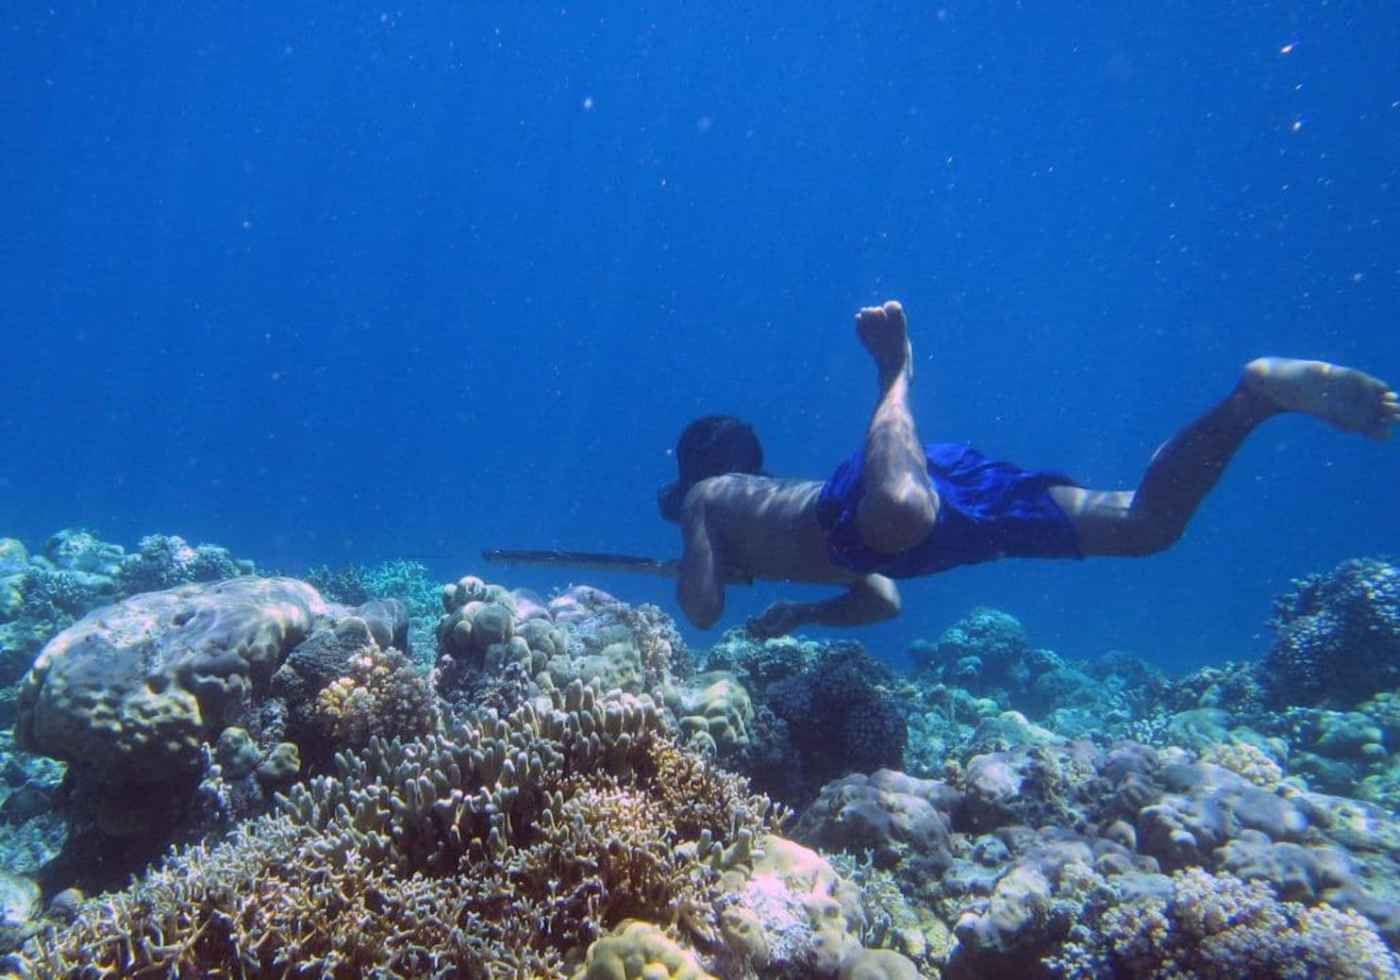 A Bajau diver hunts fish underwater using a traditional spear, off the islands of Indonesia. (Melissa Ilardo/AFP)